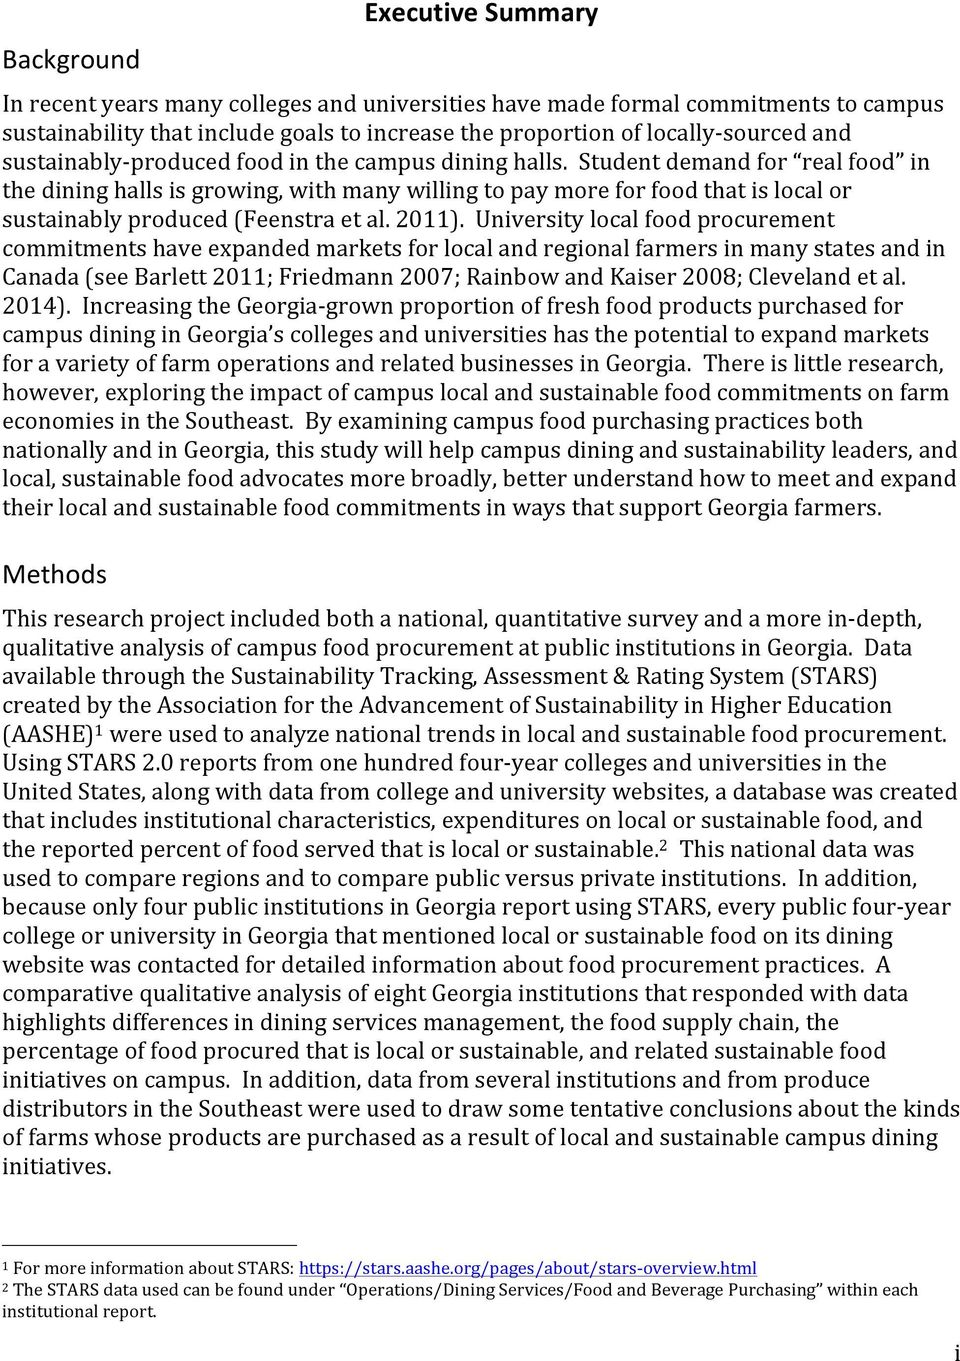 Student demand for real food in the dining halls is growing, with many willing to pay more for food that is local or sustainably produced (Feenstra et al. 2011).